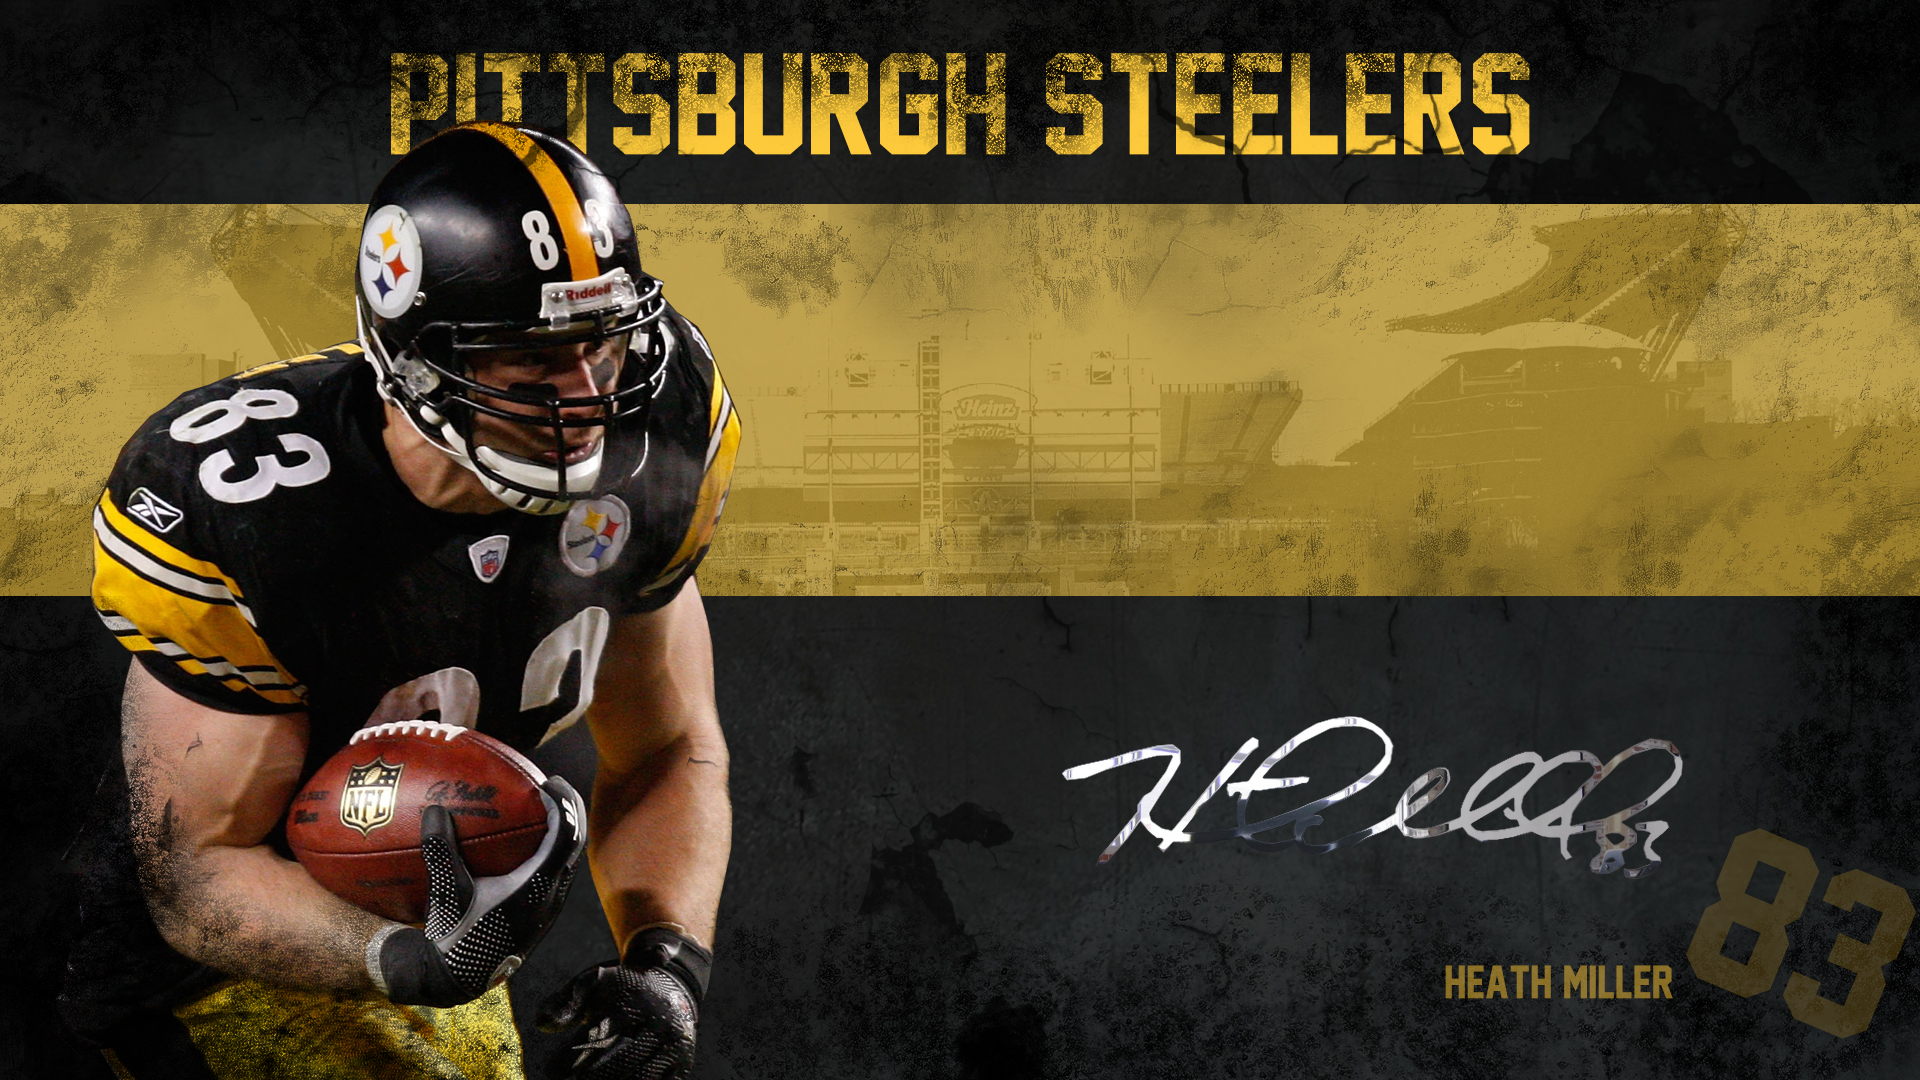 Heath Miller Wallpaper pittsburgh steelers 1920 1080.